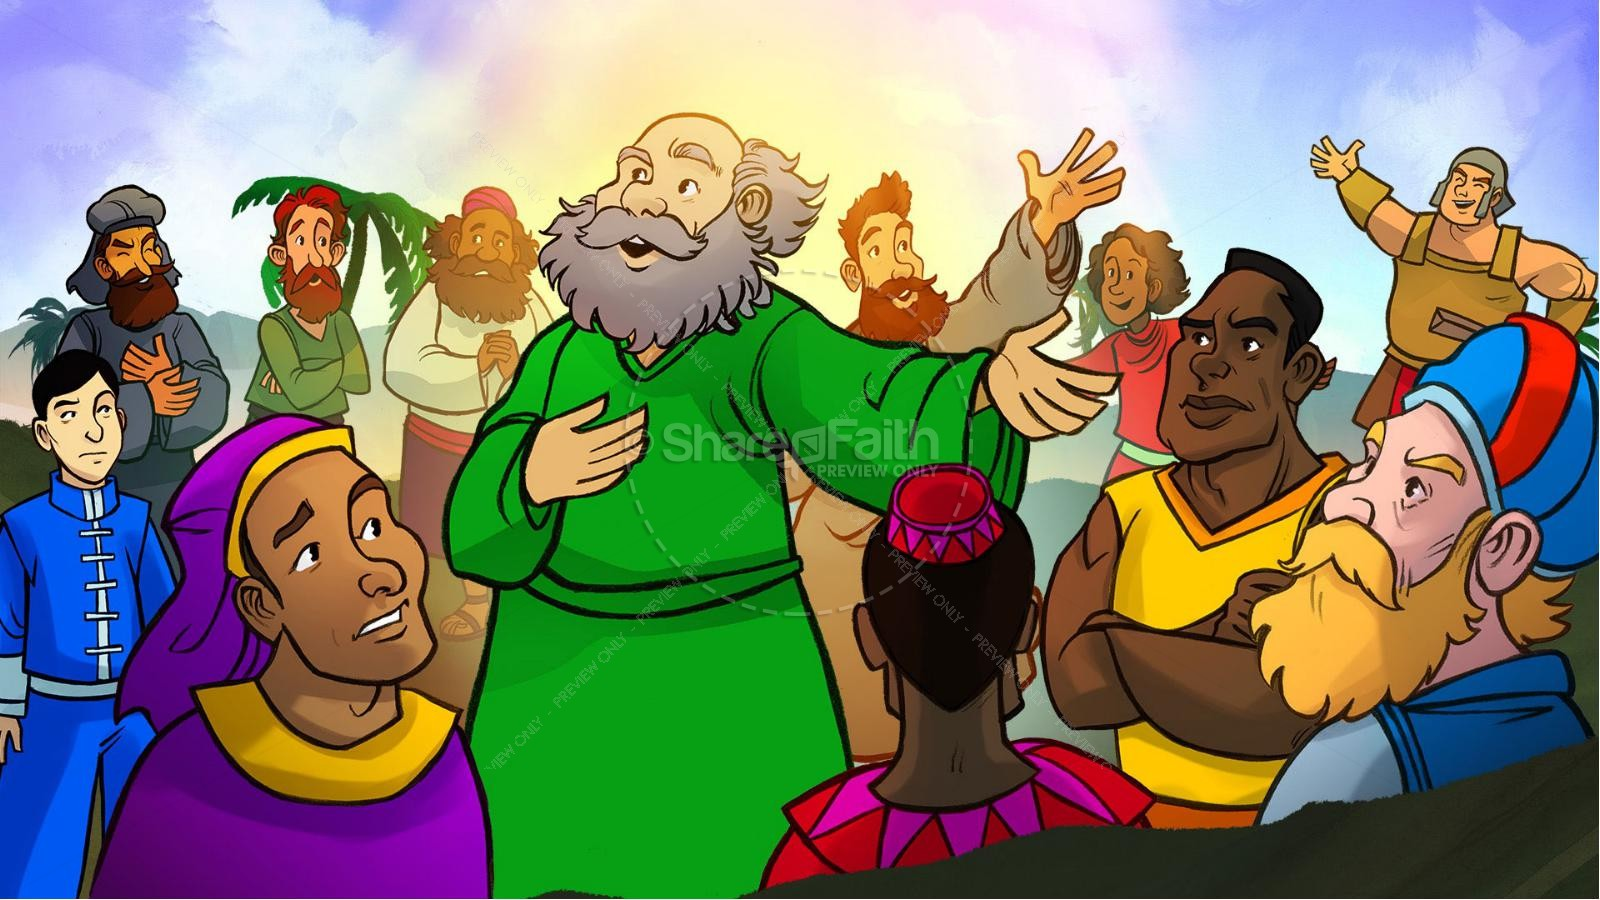 Acts 2 The Holy Spirit Comes Kids Bible Story | slide 5